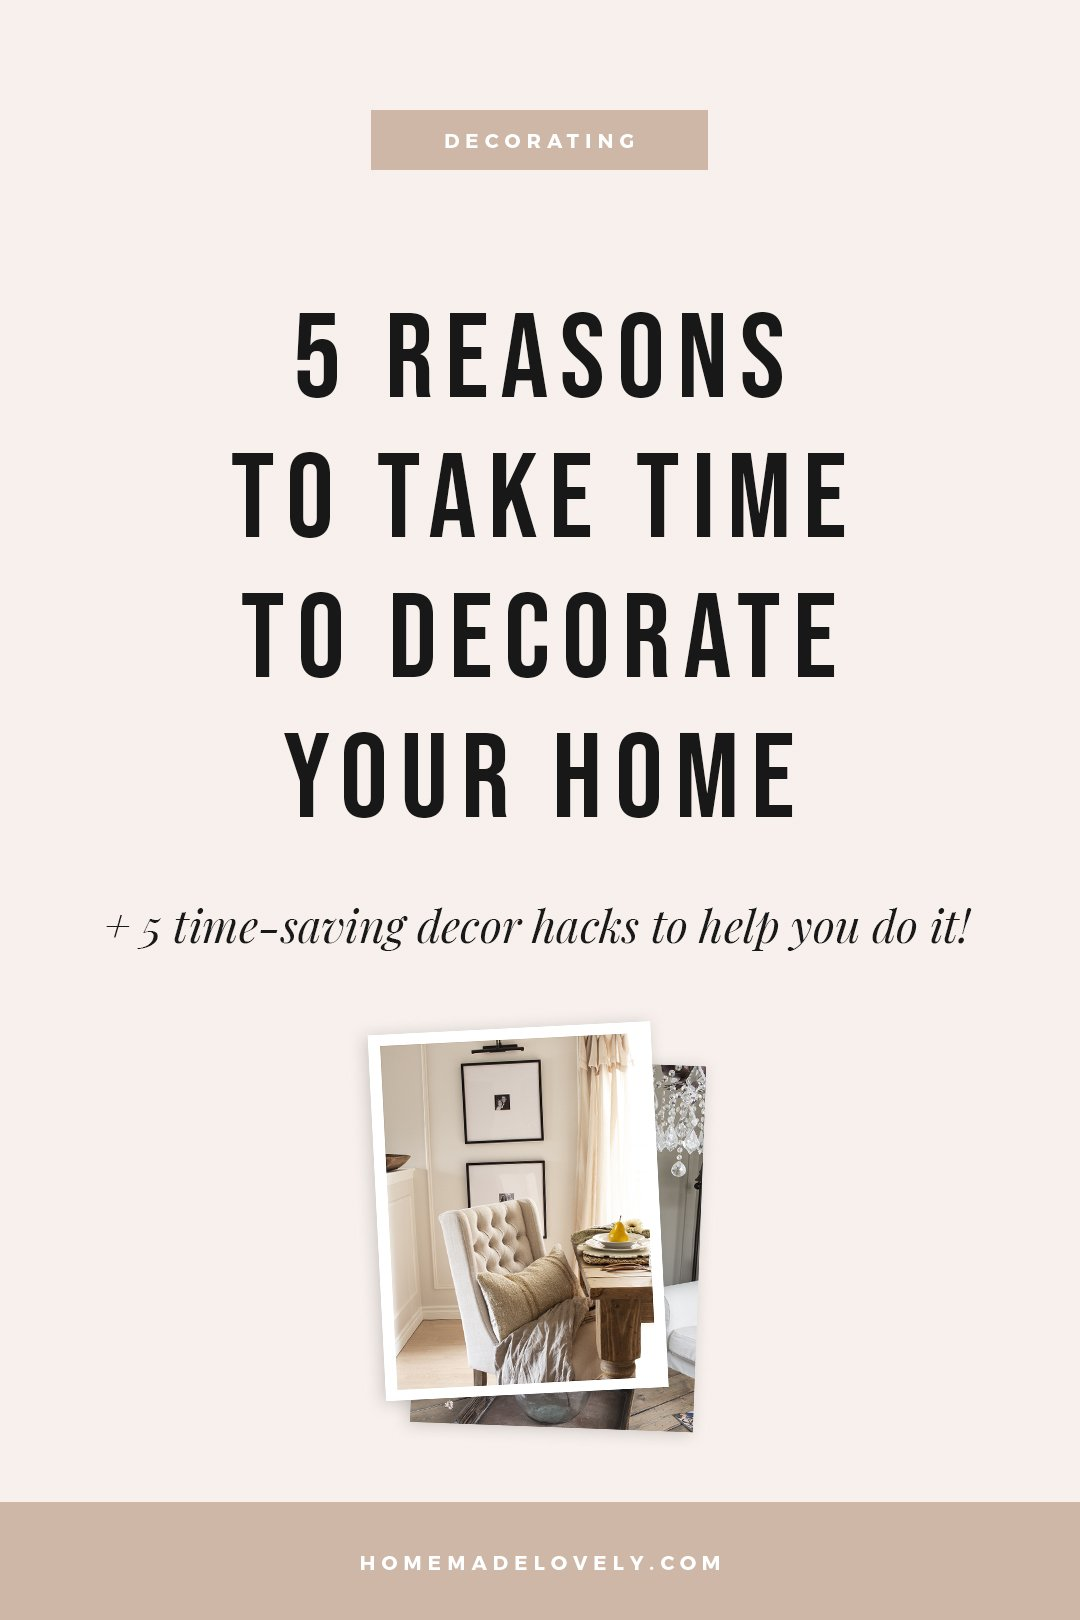 5 Reasons to Take Time To Decorate Your Home text over light pink background color